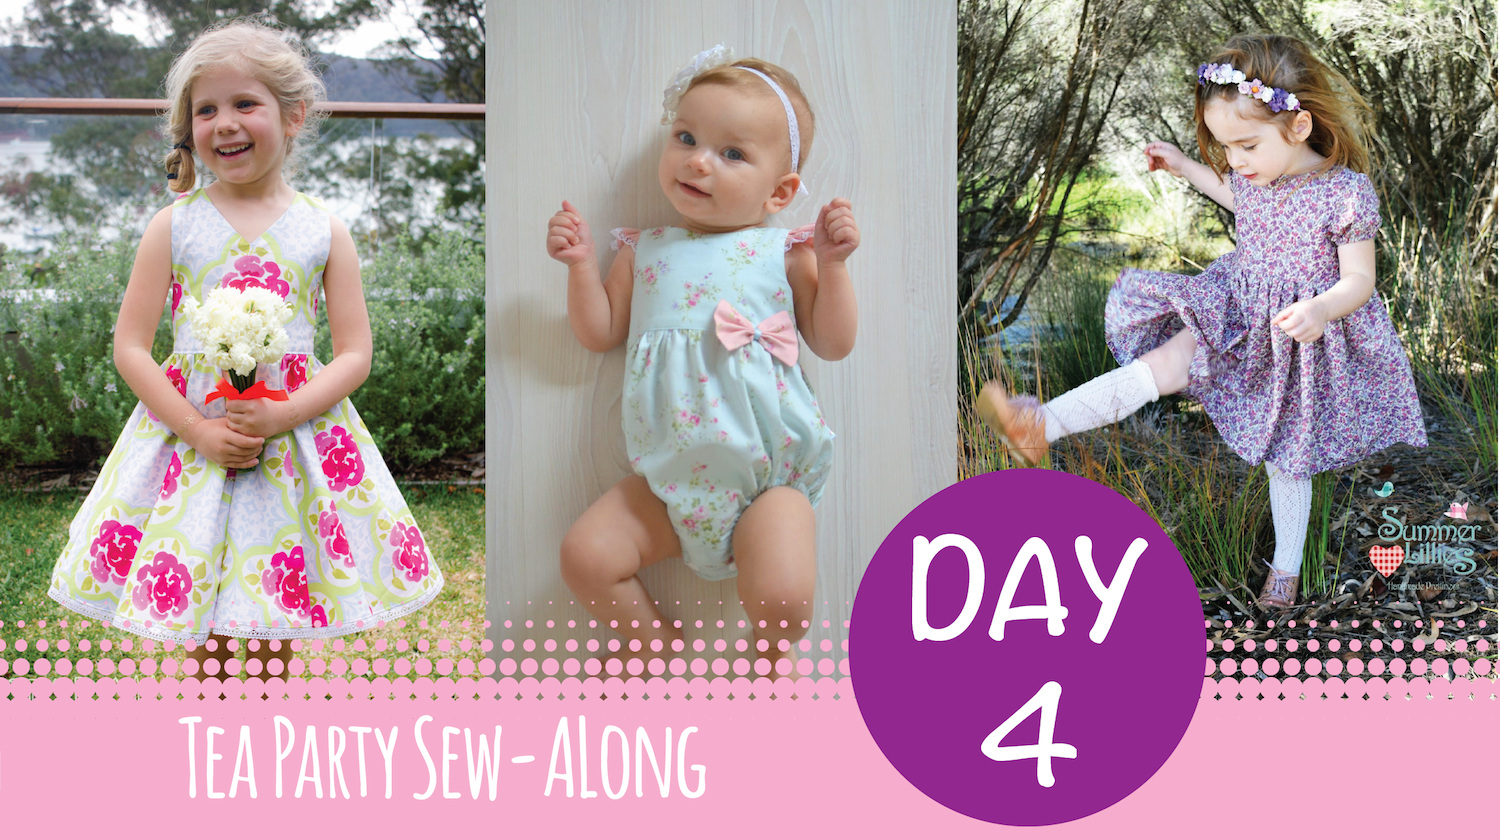 Tadah Tea Party Sew Along - Day 4